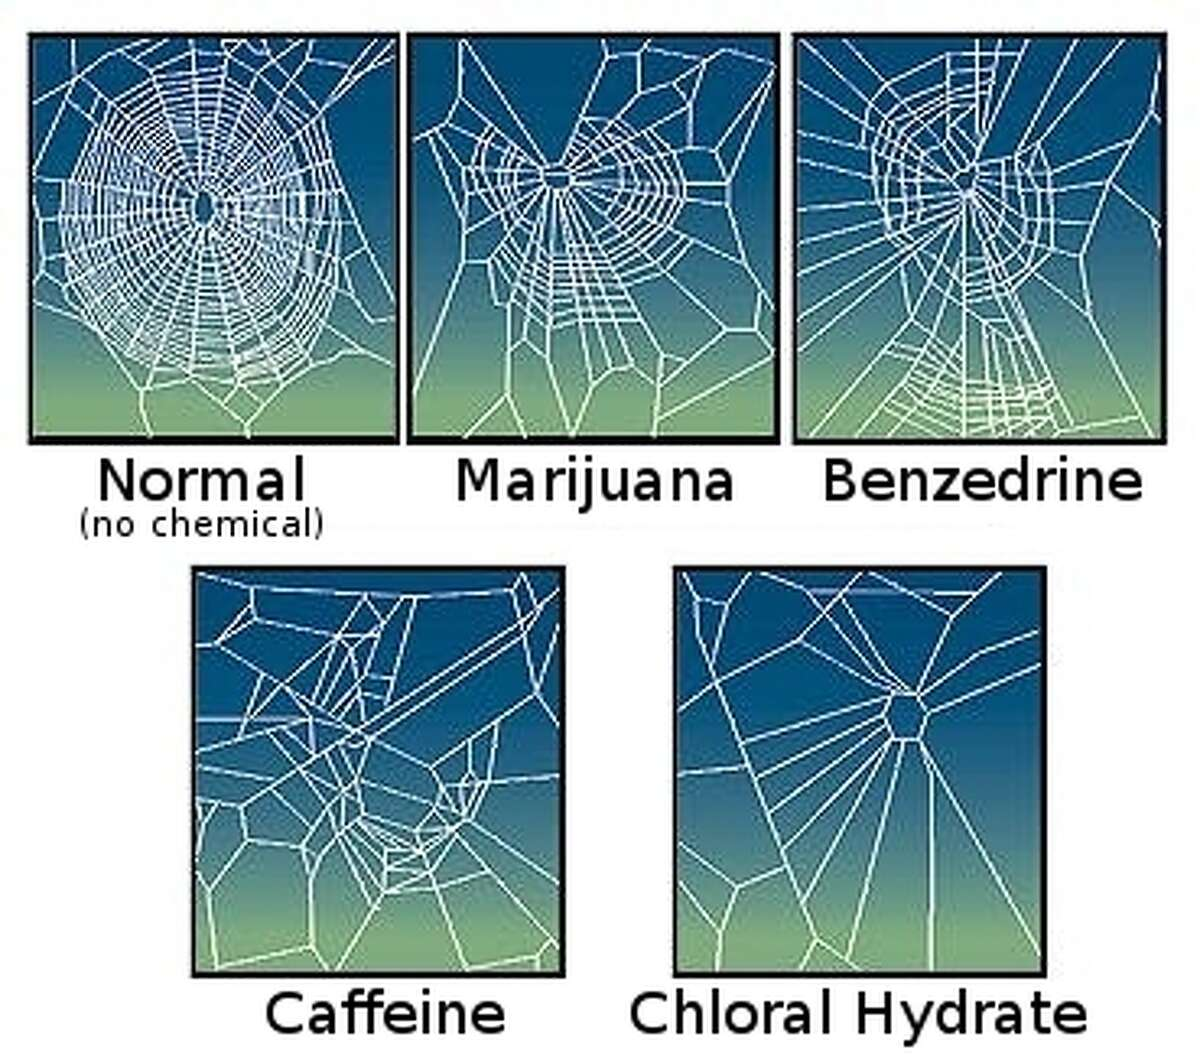 Giving spiders LSD  Repeating an experiment by a Swiss pharmacologist, NASA, in 1995, gave spiders caffeine, mescaline, LSD, marijuana and sleeping pills, and watched them weave their webs. The spiders on weed or sleeping pills failed to complete their webs. The caffeinated spiders completed their webs faster, but in a disorganized fashion with large gaps in the design. The spiders on LSD actually completed their webs with more geometric regularity than if they had remained stone-cold sober.